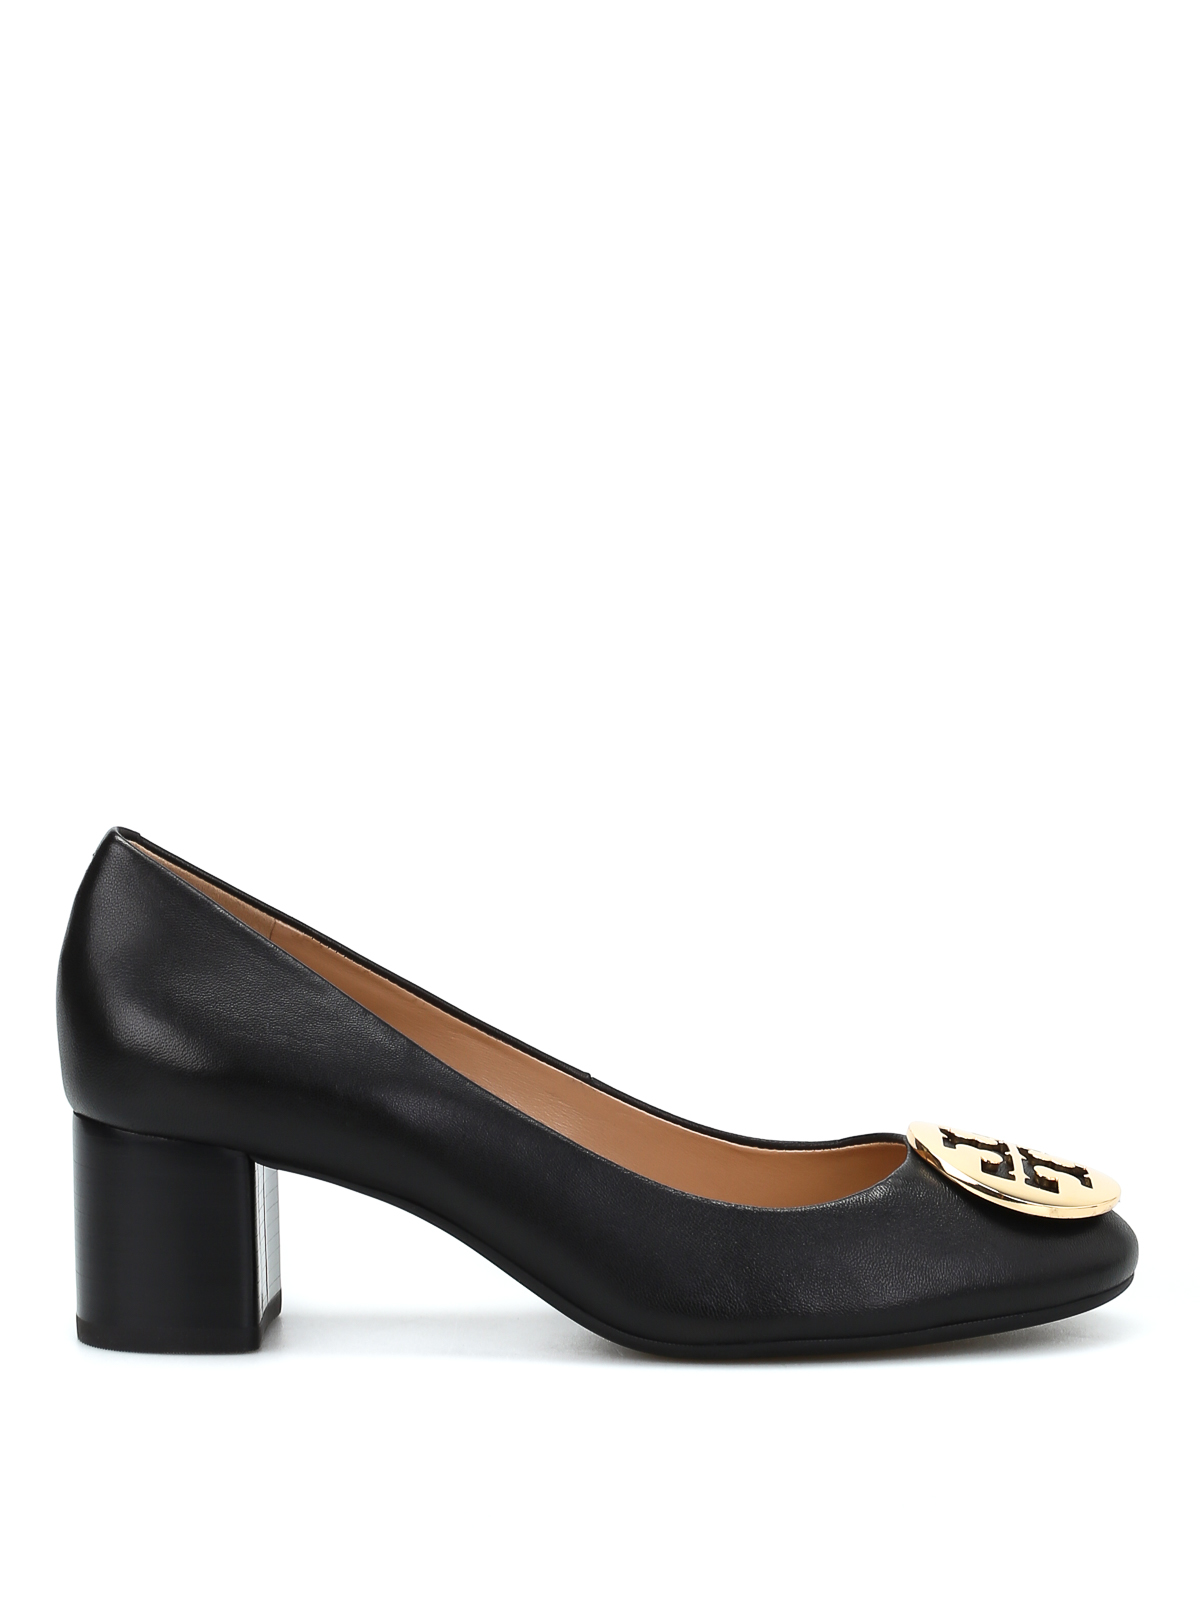 Spring Court Shoes Leather